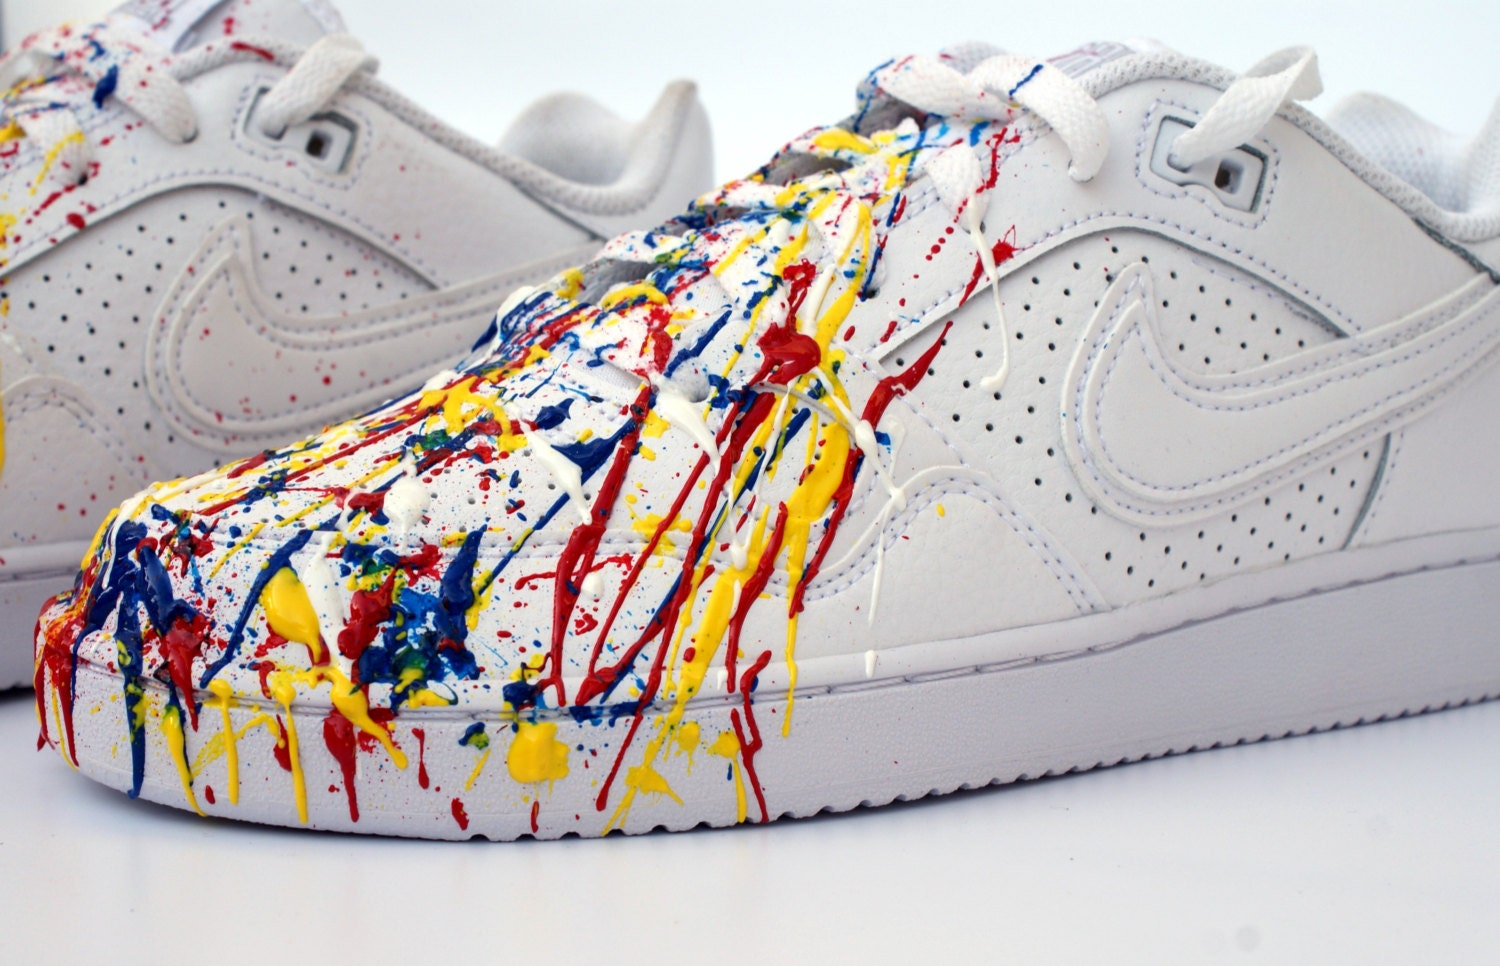 Men sneakers Nike air force one white low - splatter painting design (numeroted edition)